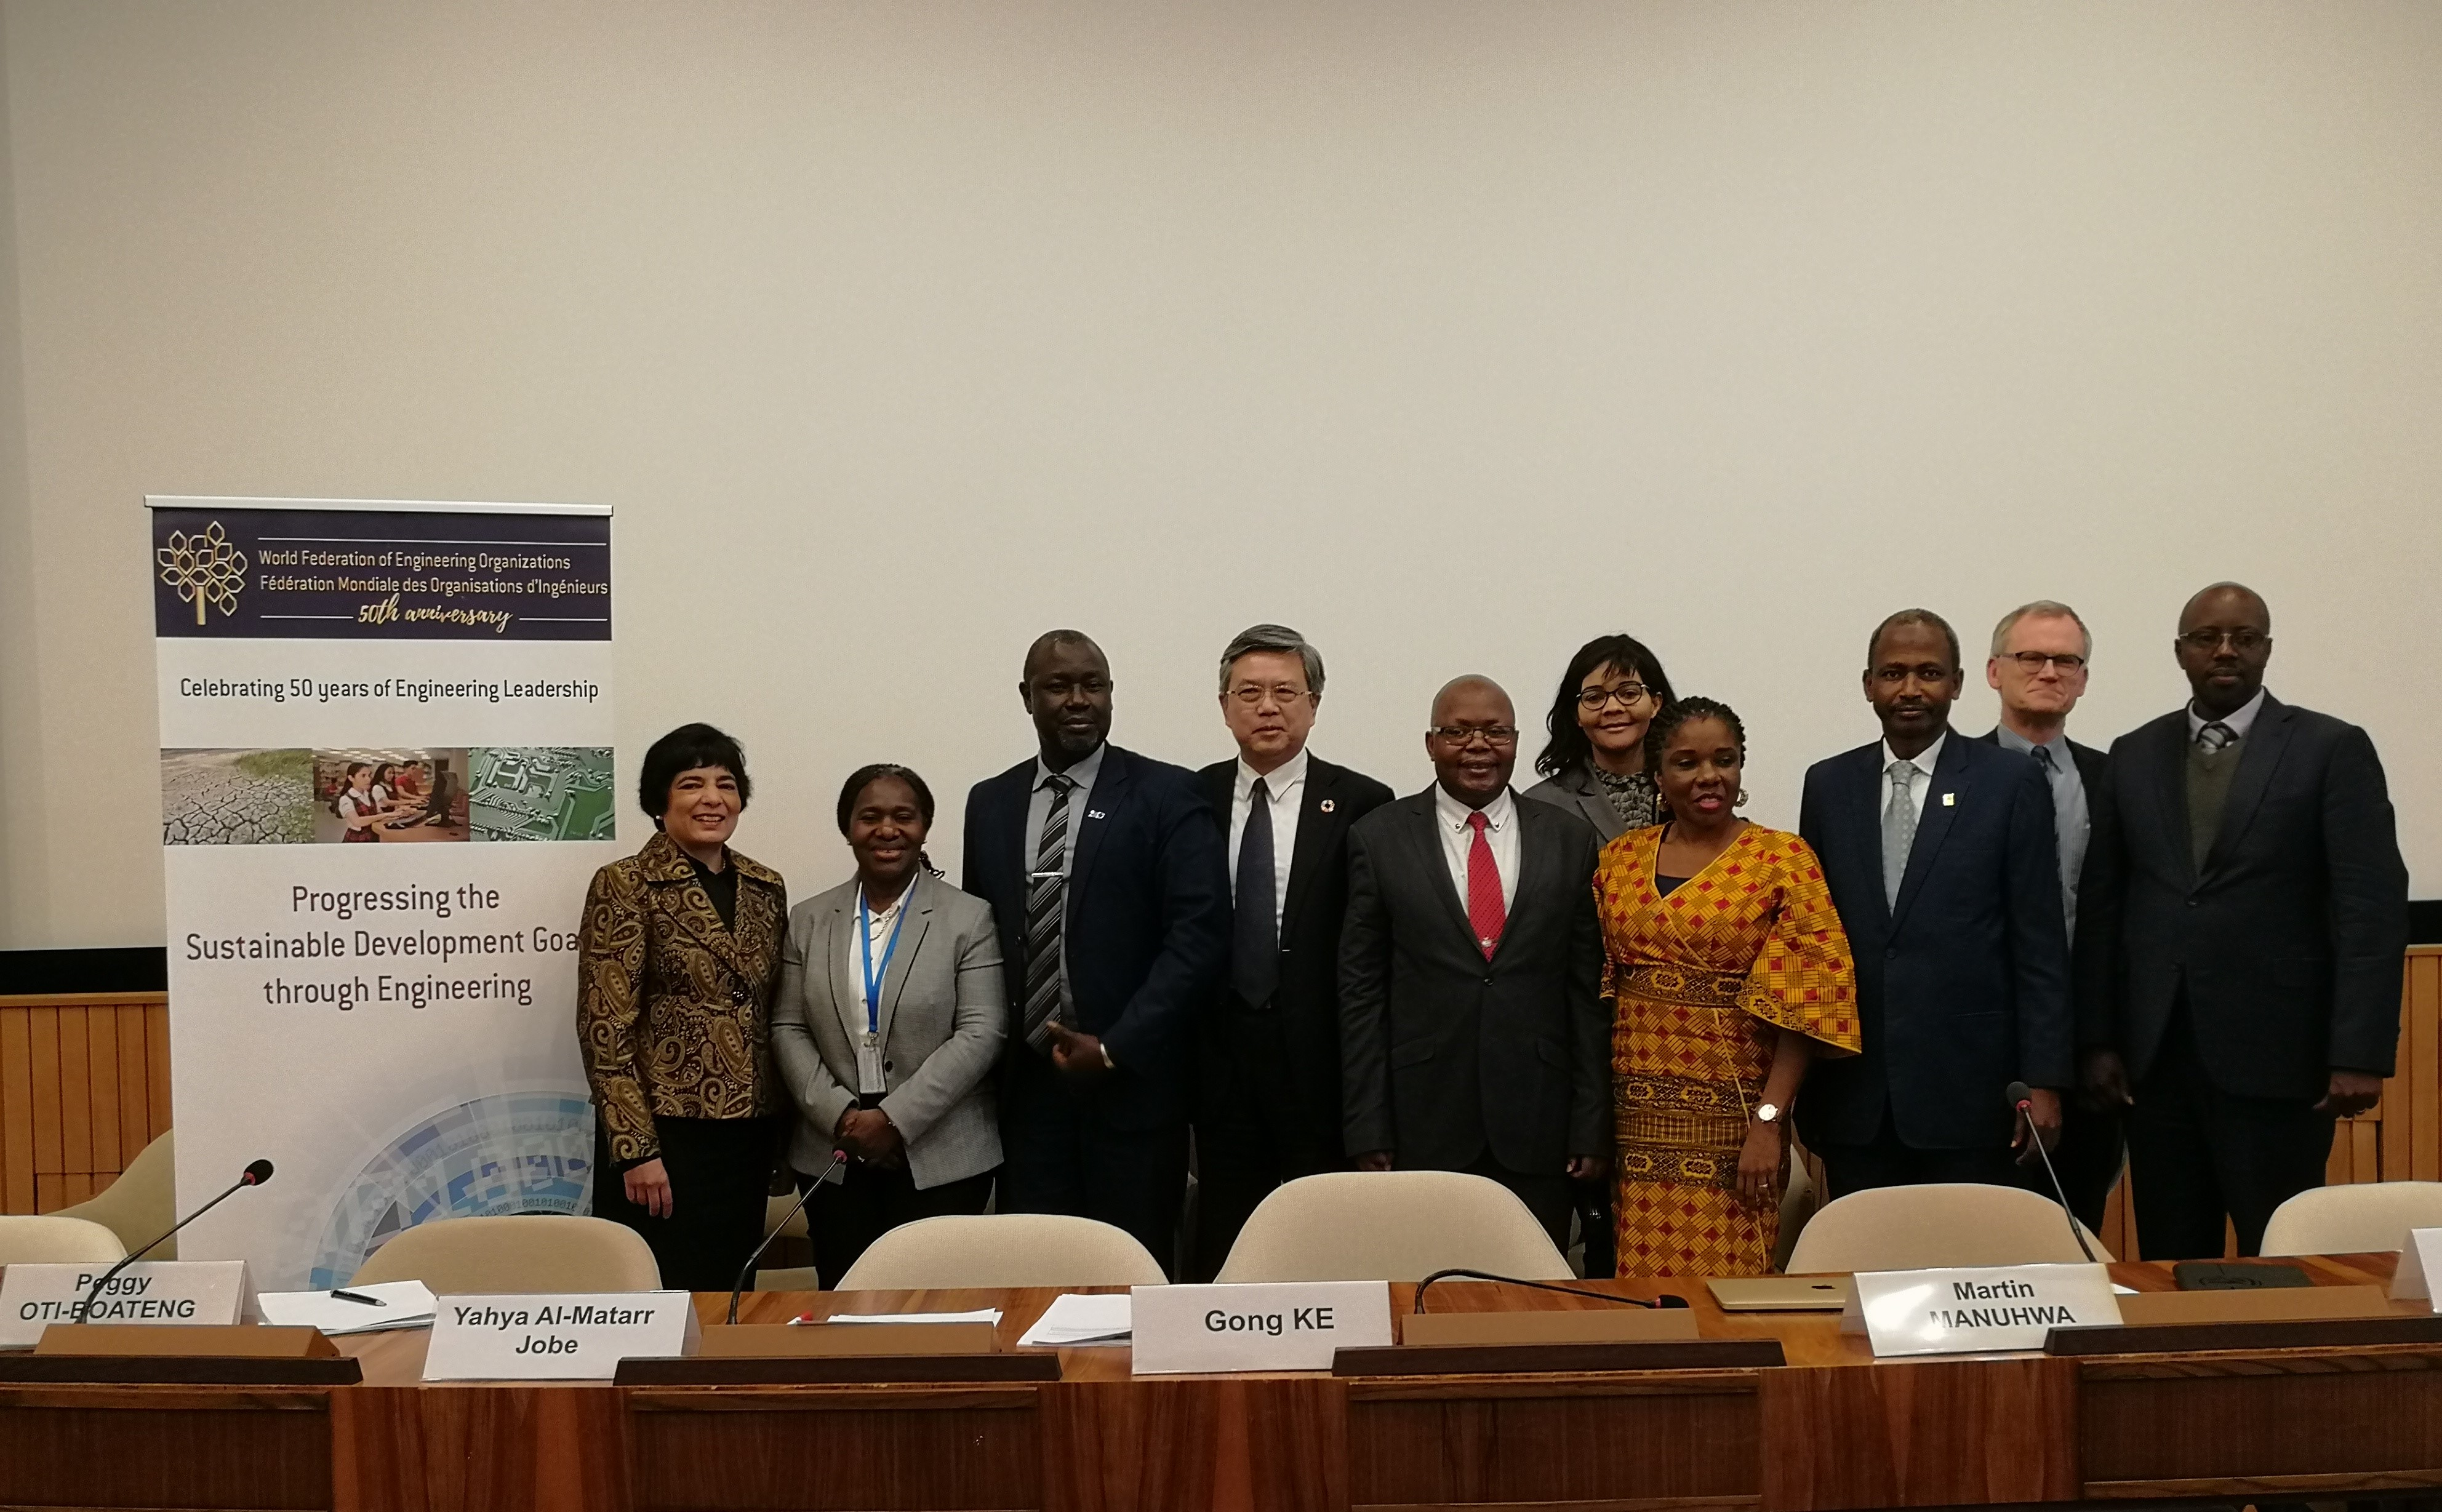 Speakers from WFEO for the UNESCO Africa Group event